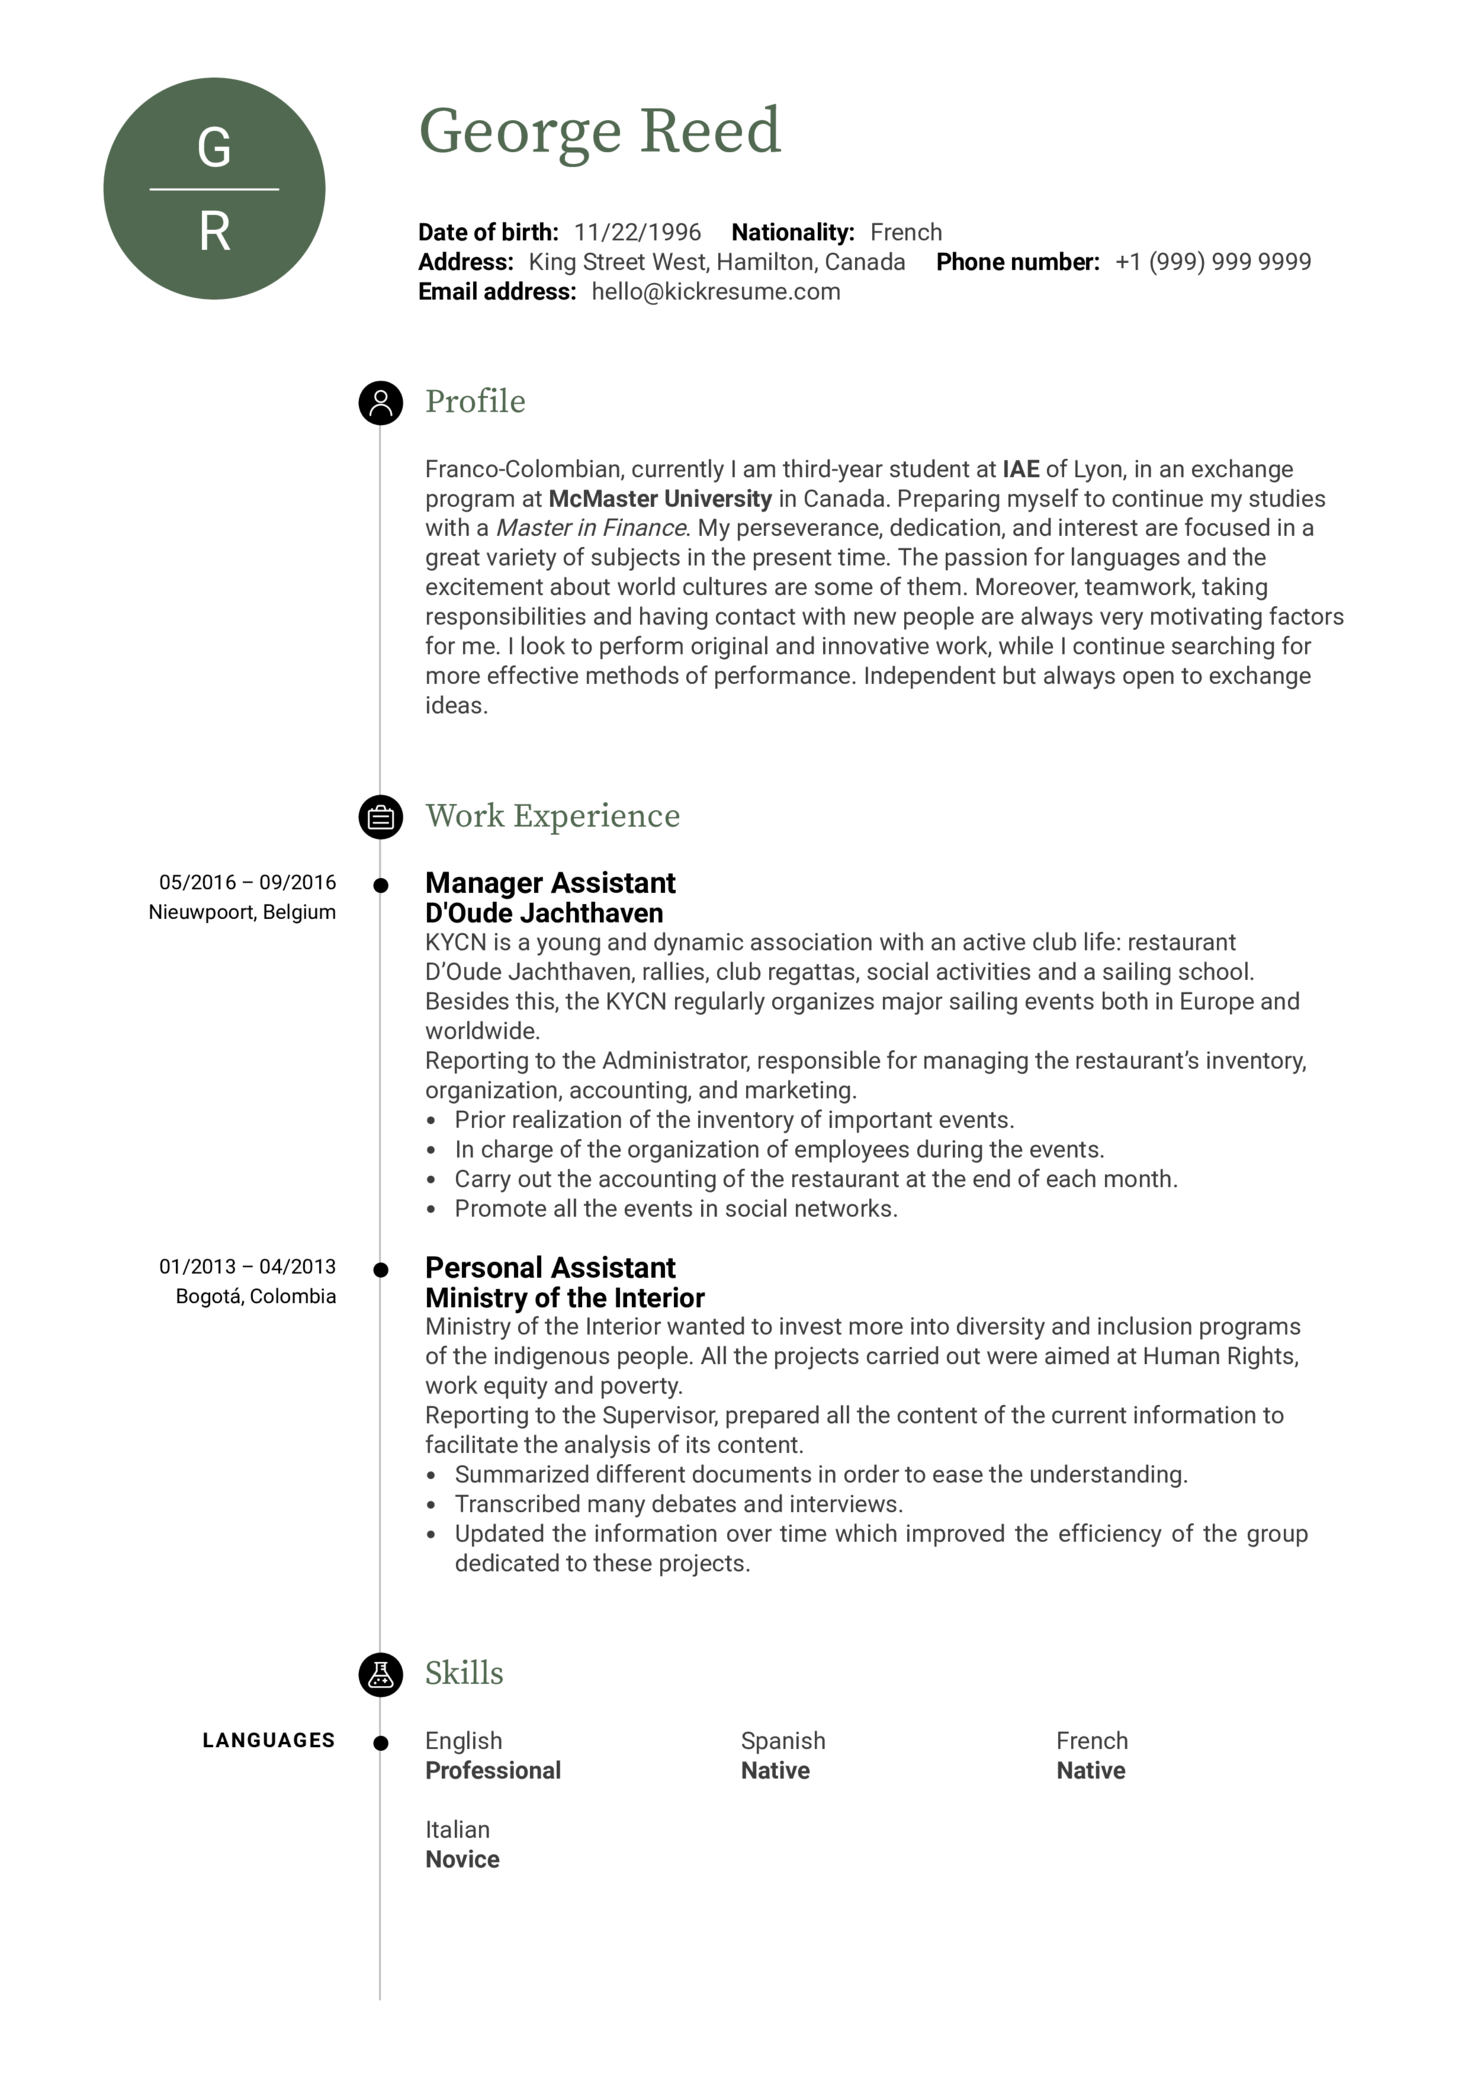 Manager Assistant Resume Template (parte 1)